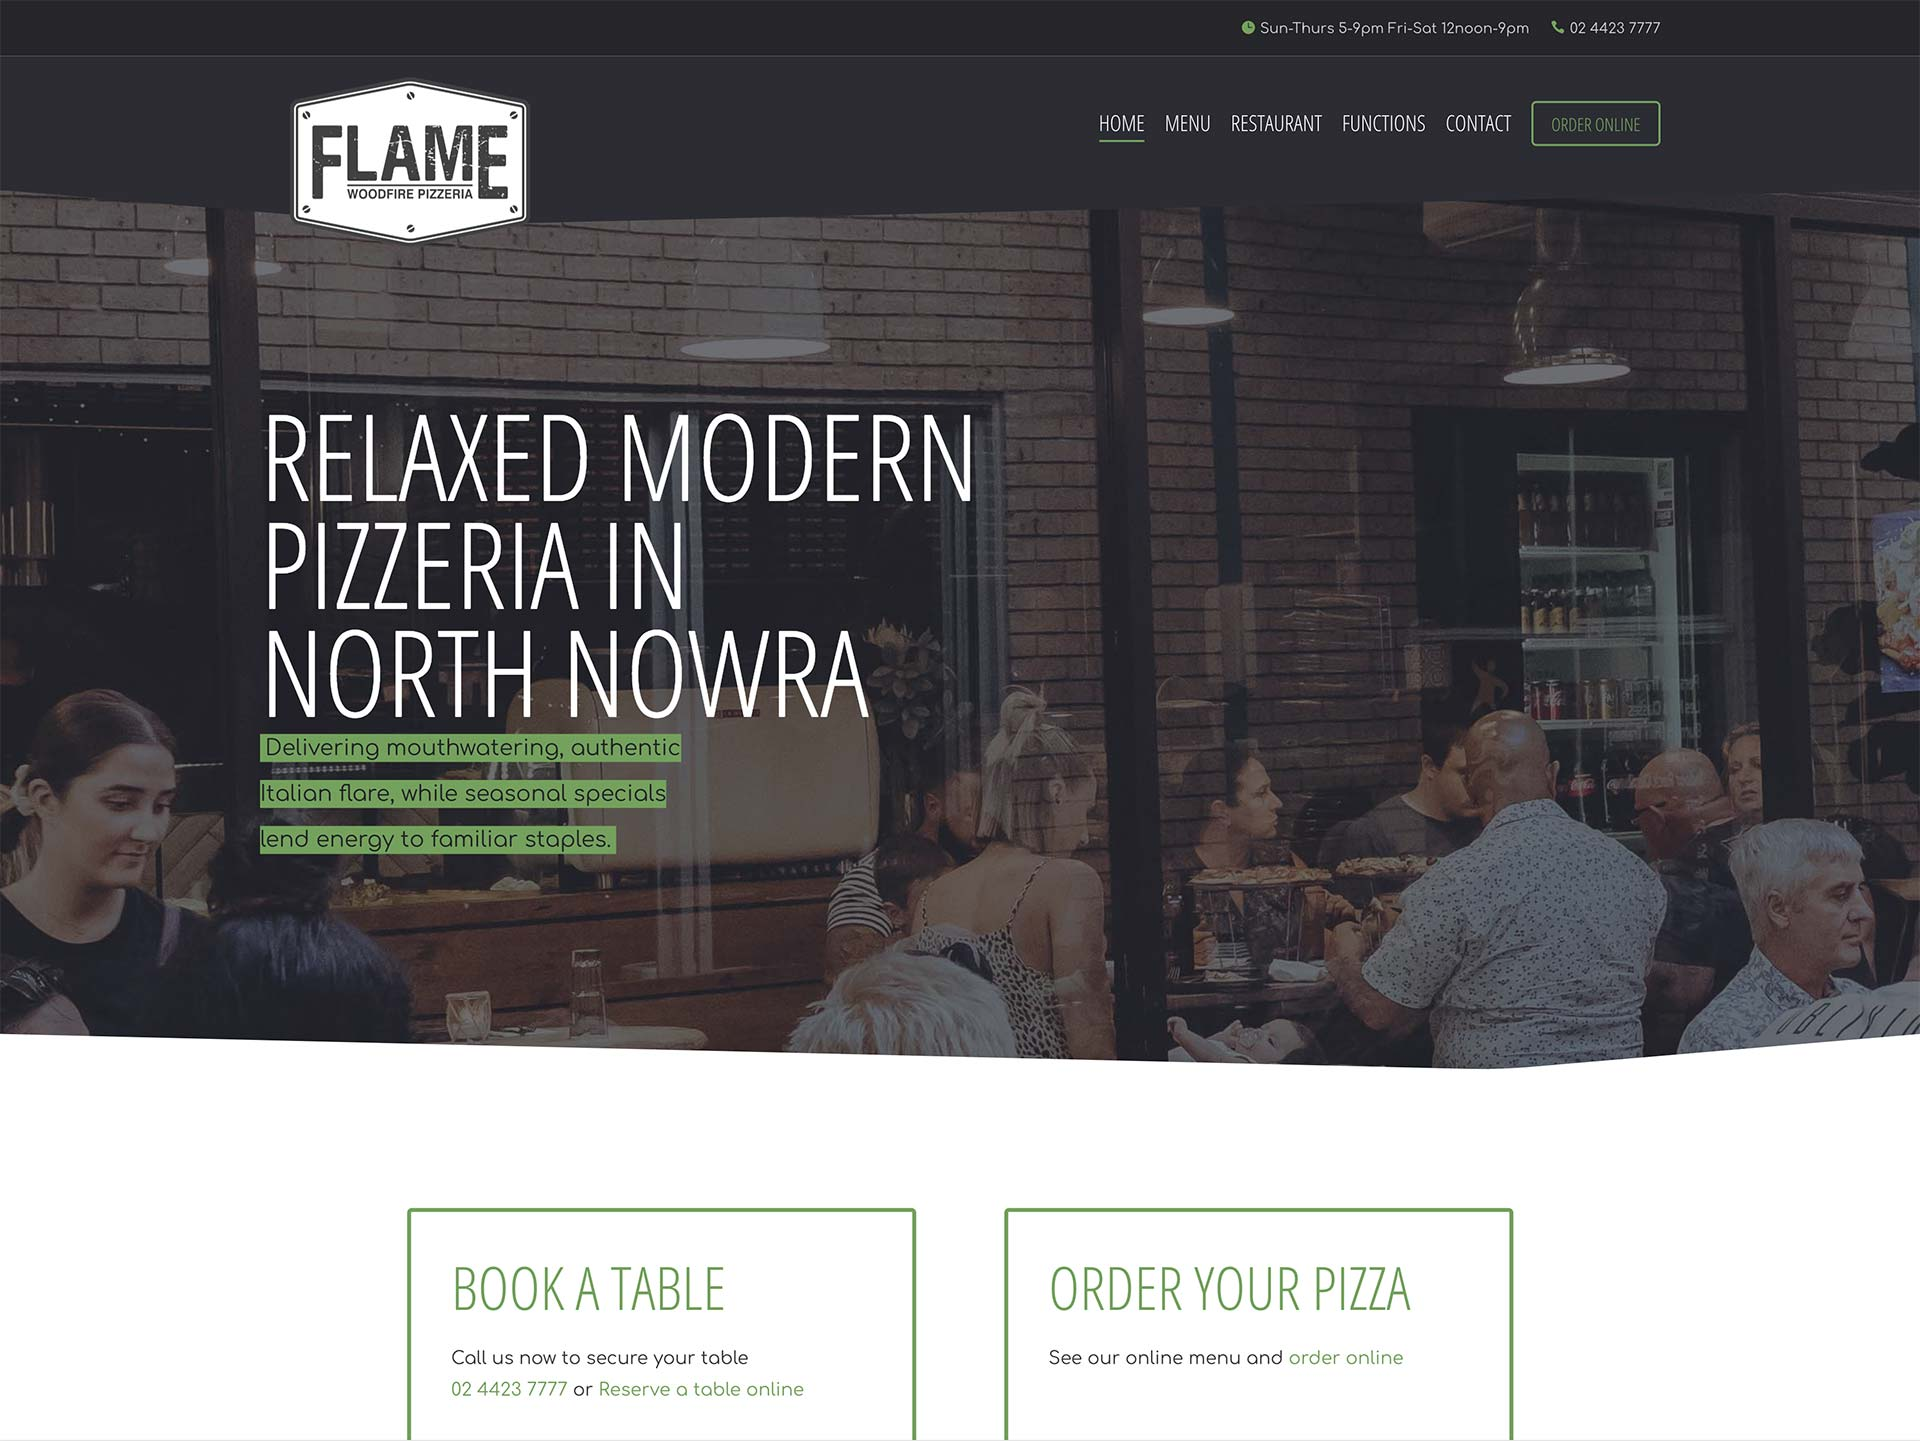 Flame Woodfired Pizzeria